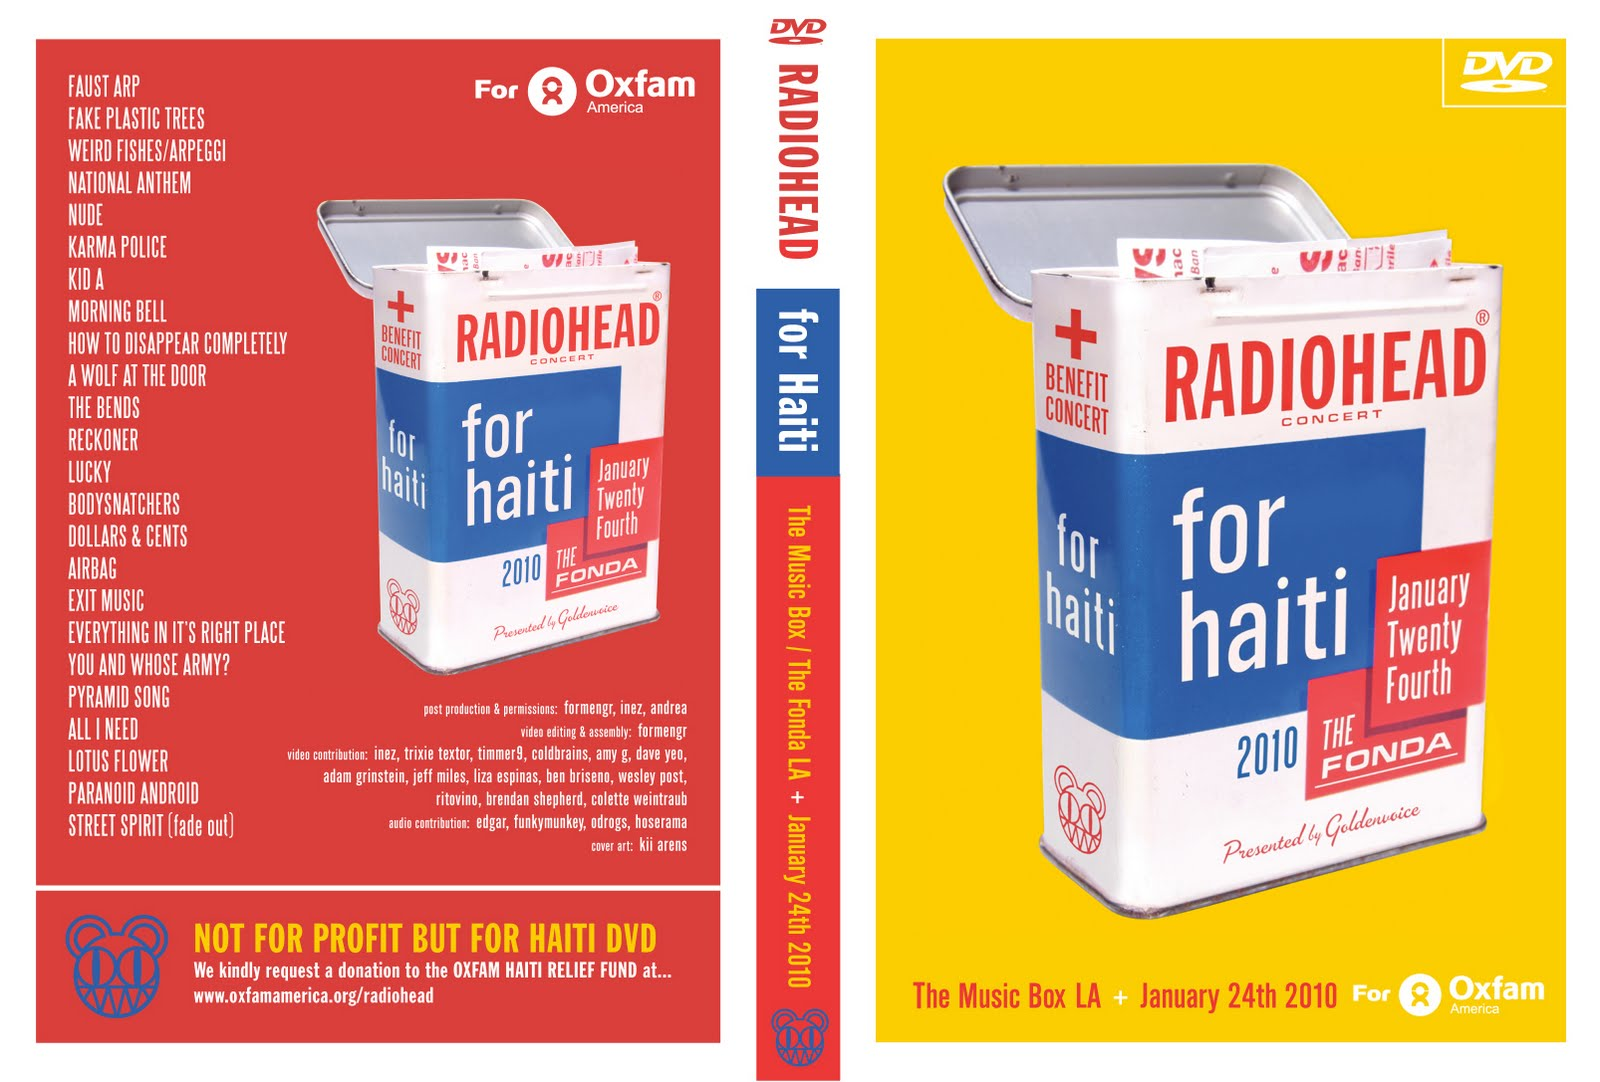 radiohead haiti dvd Download: New Radiohead authorized concert film